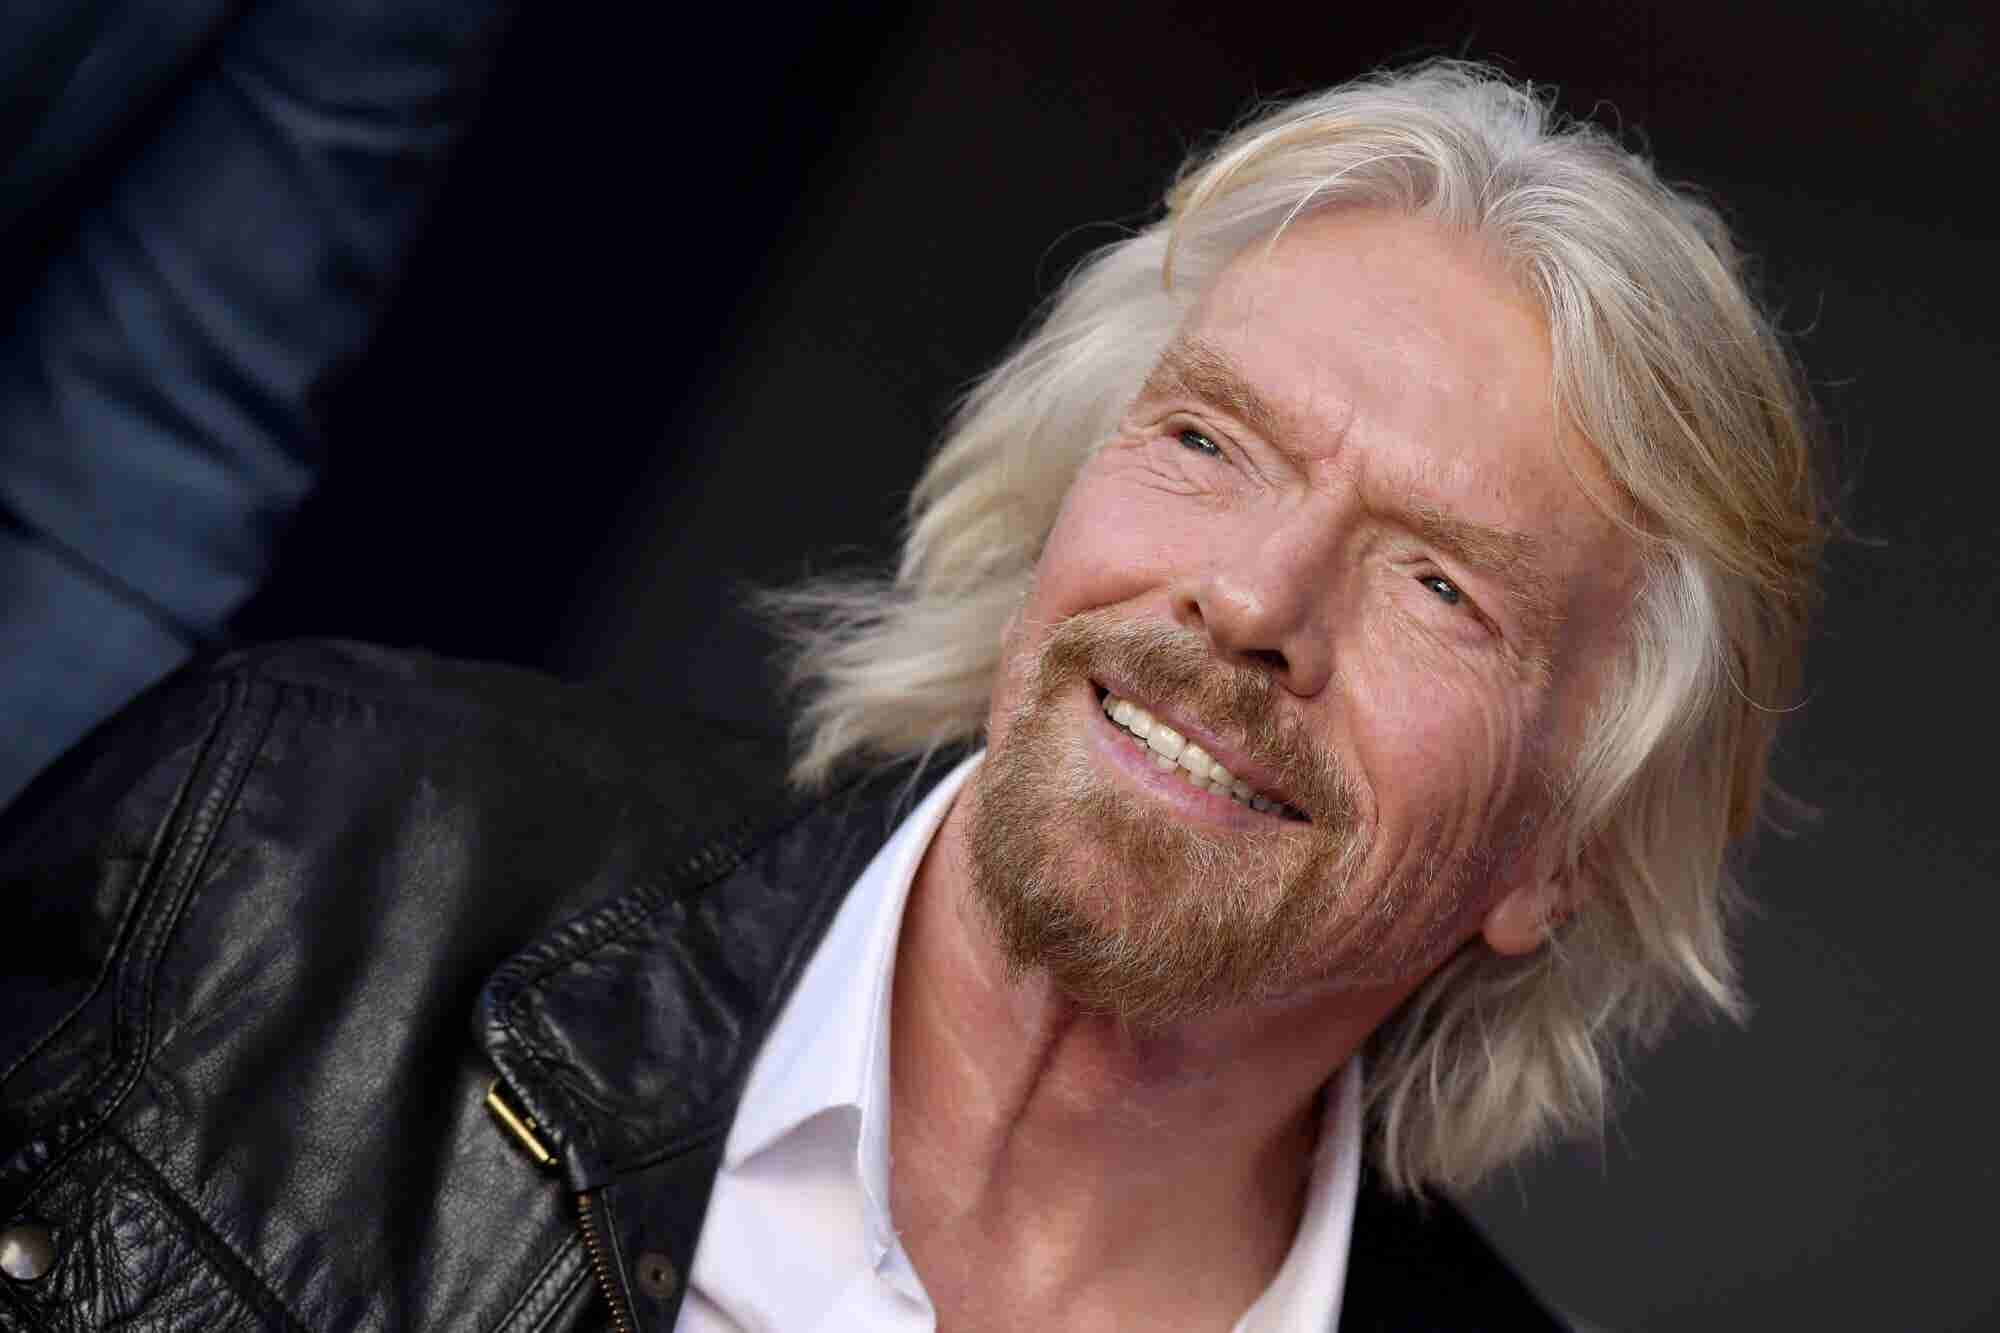 Richard Branson Thinks the 9-5 Workday Grind Will Disappear